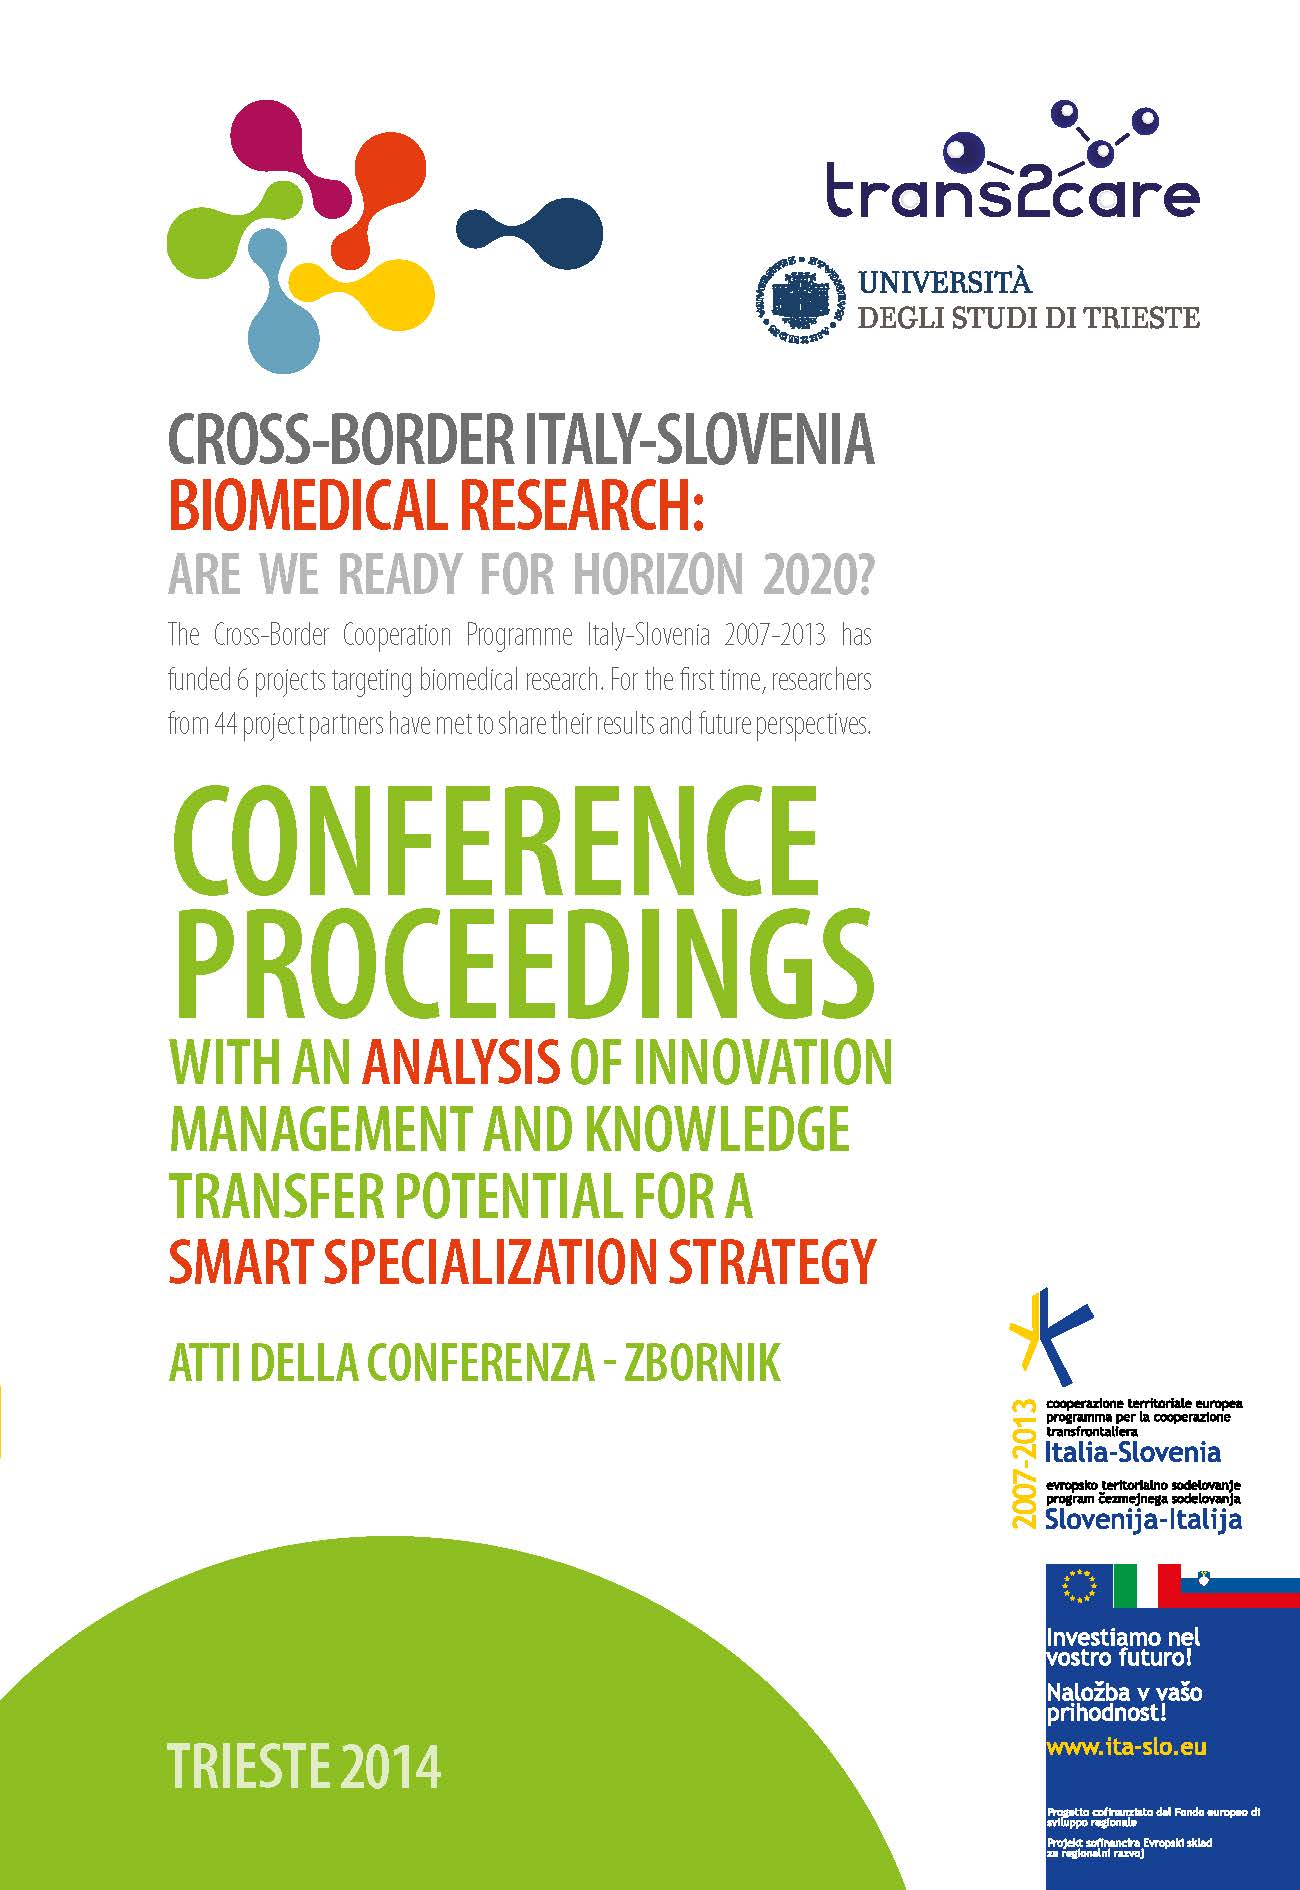 Trans2care. Cross-Border Italy-Slovenia Biomedical Research. Are we ready for Horizon 2020?